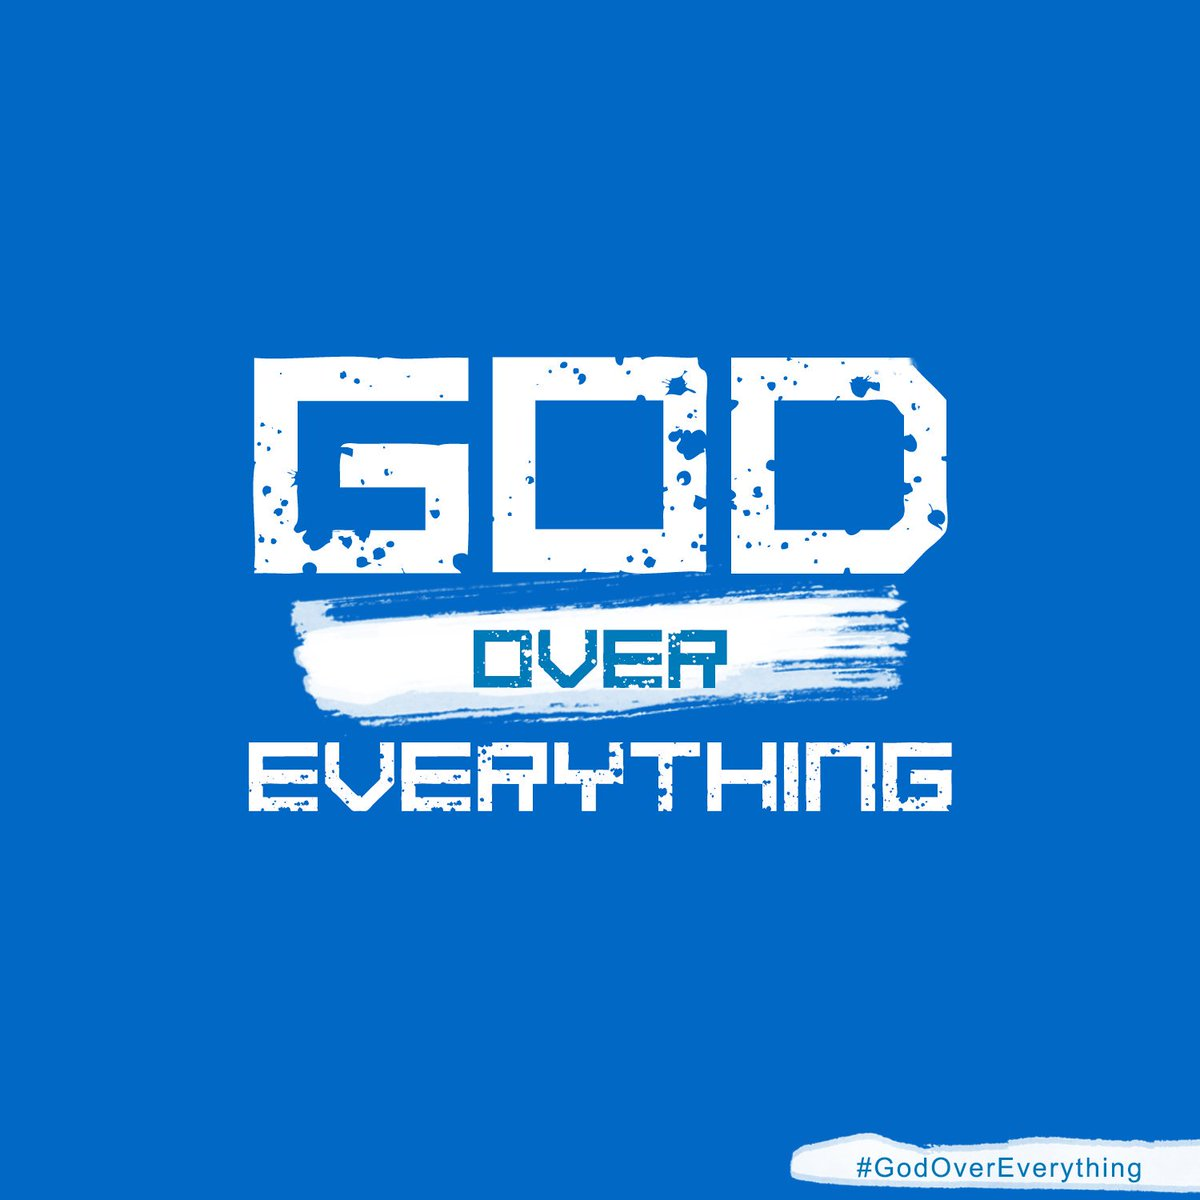 Hey Fam, join the ongoing #GodOverEverything campaign. Simply write an inspirational post and add #GodOverEverything https://t.co/kooV1Uy11N